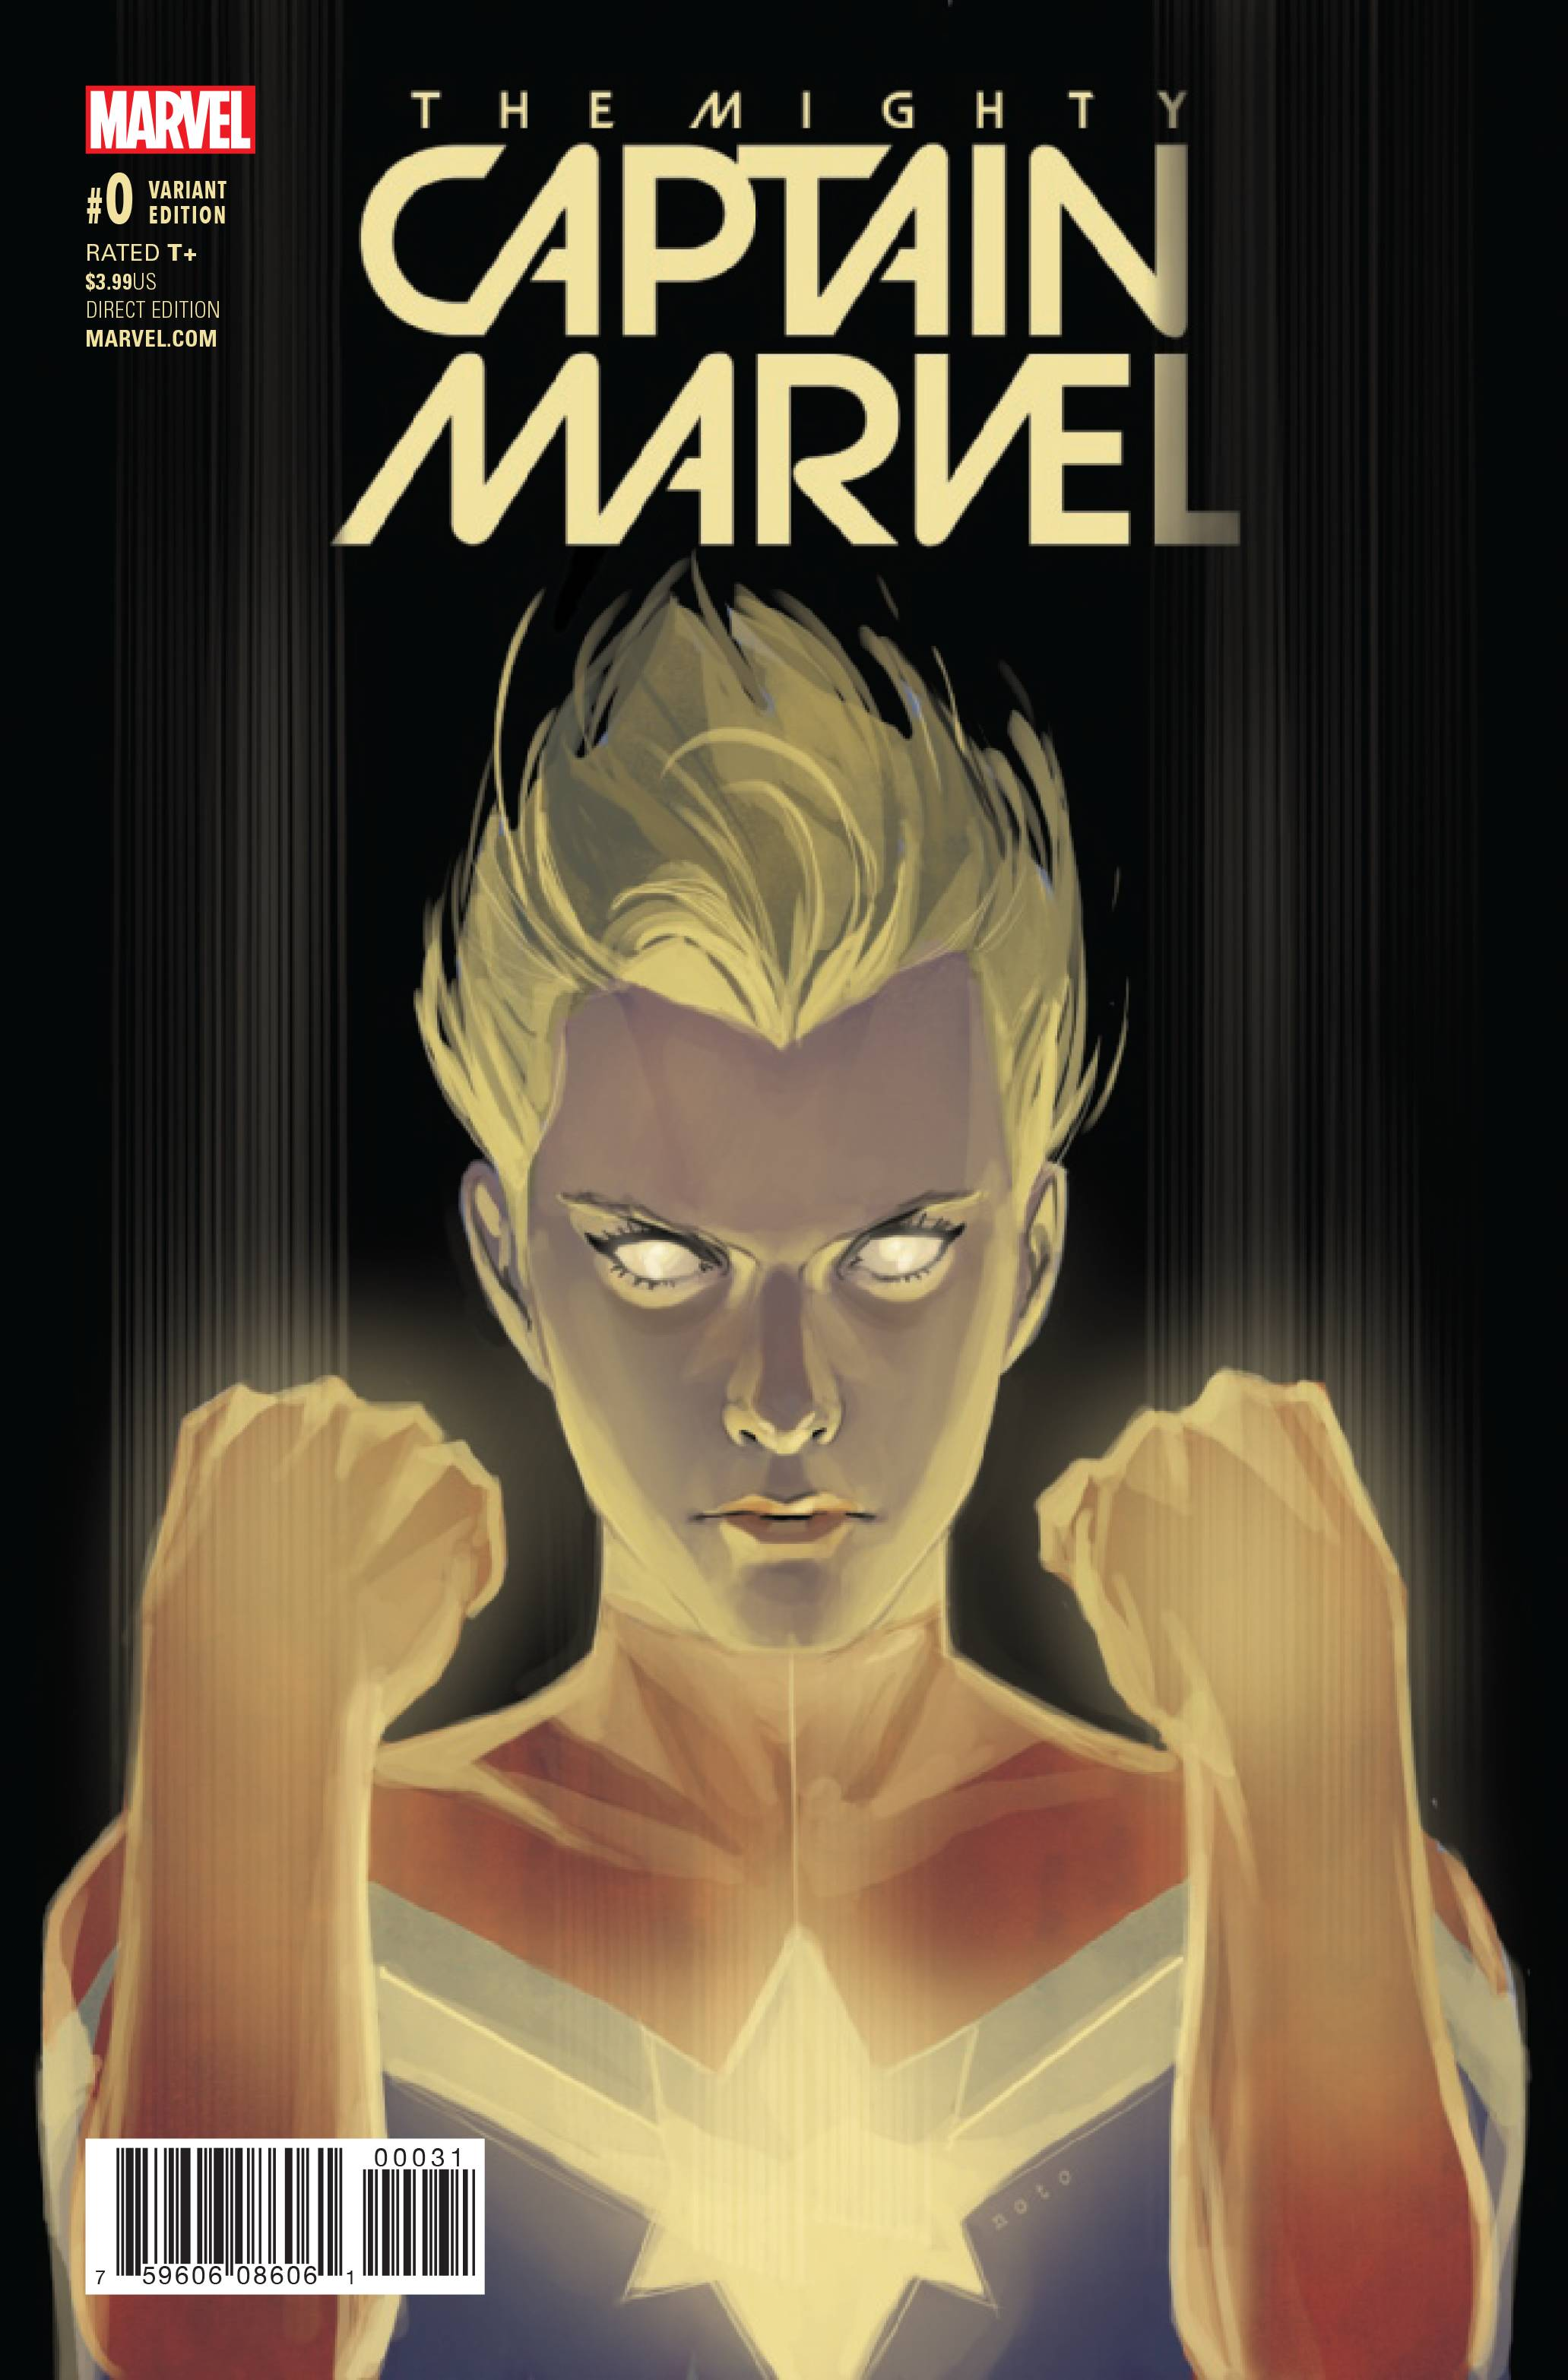 MIGHTY CAPTAIN MARVEL #0 NOTO VAR NOW